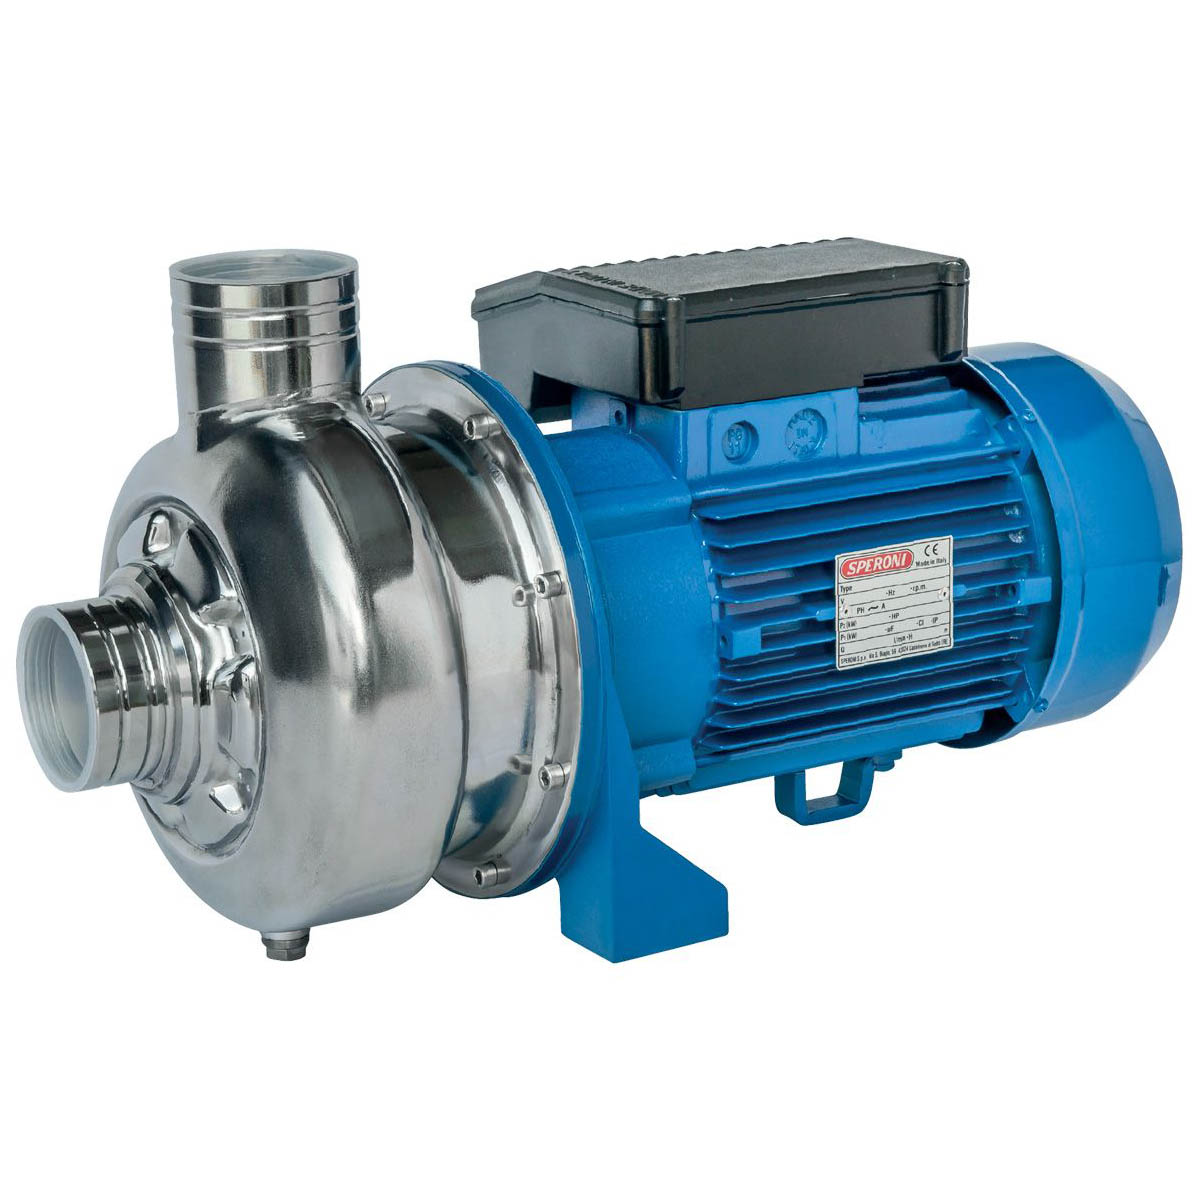 SPERONI WXM300-A/WX300-A, Open Impeller Centrifugal Water Pump